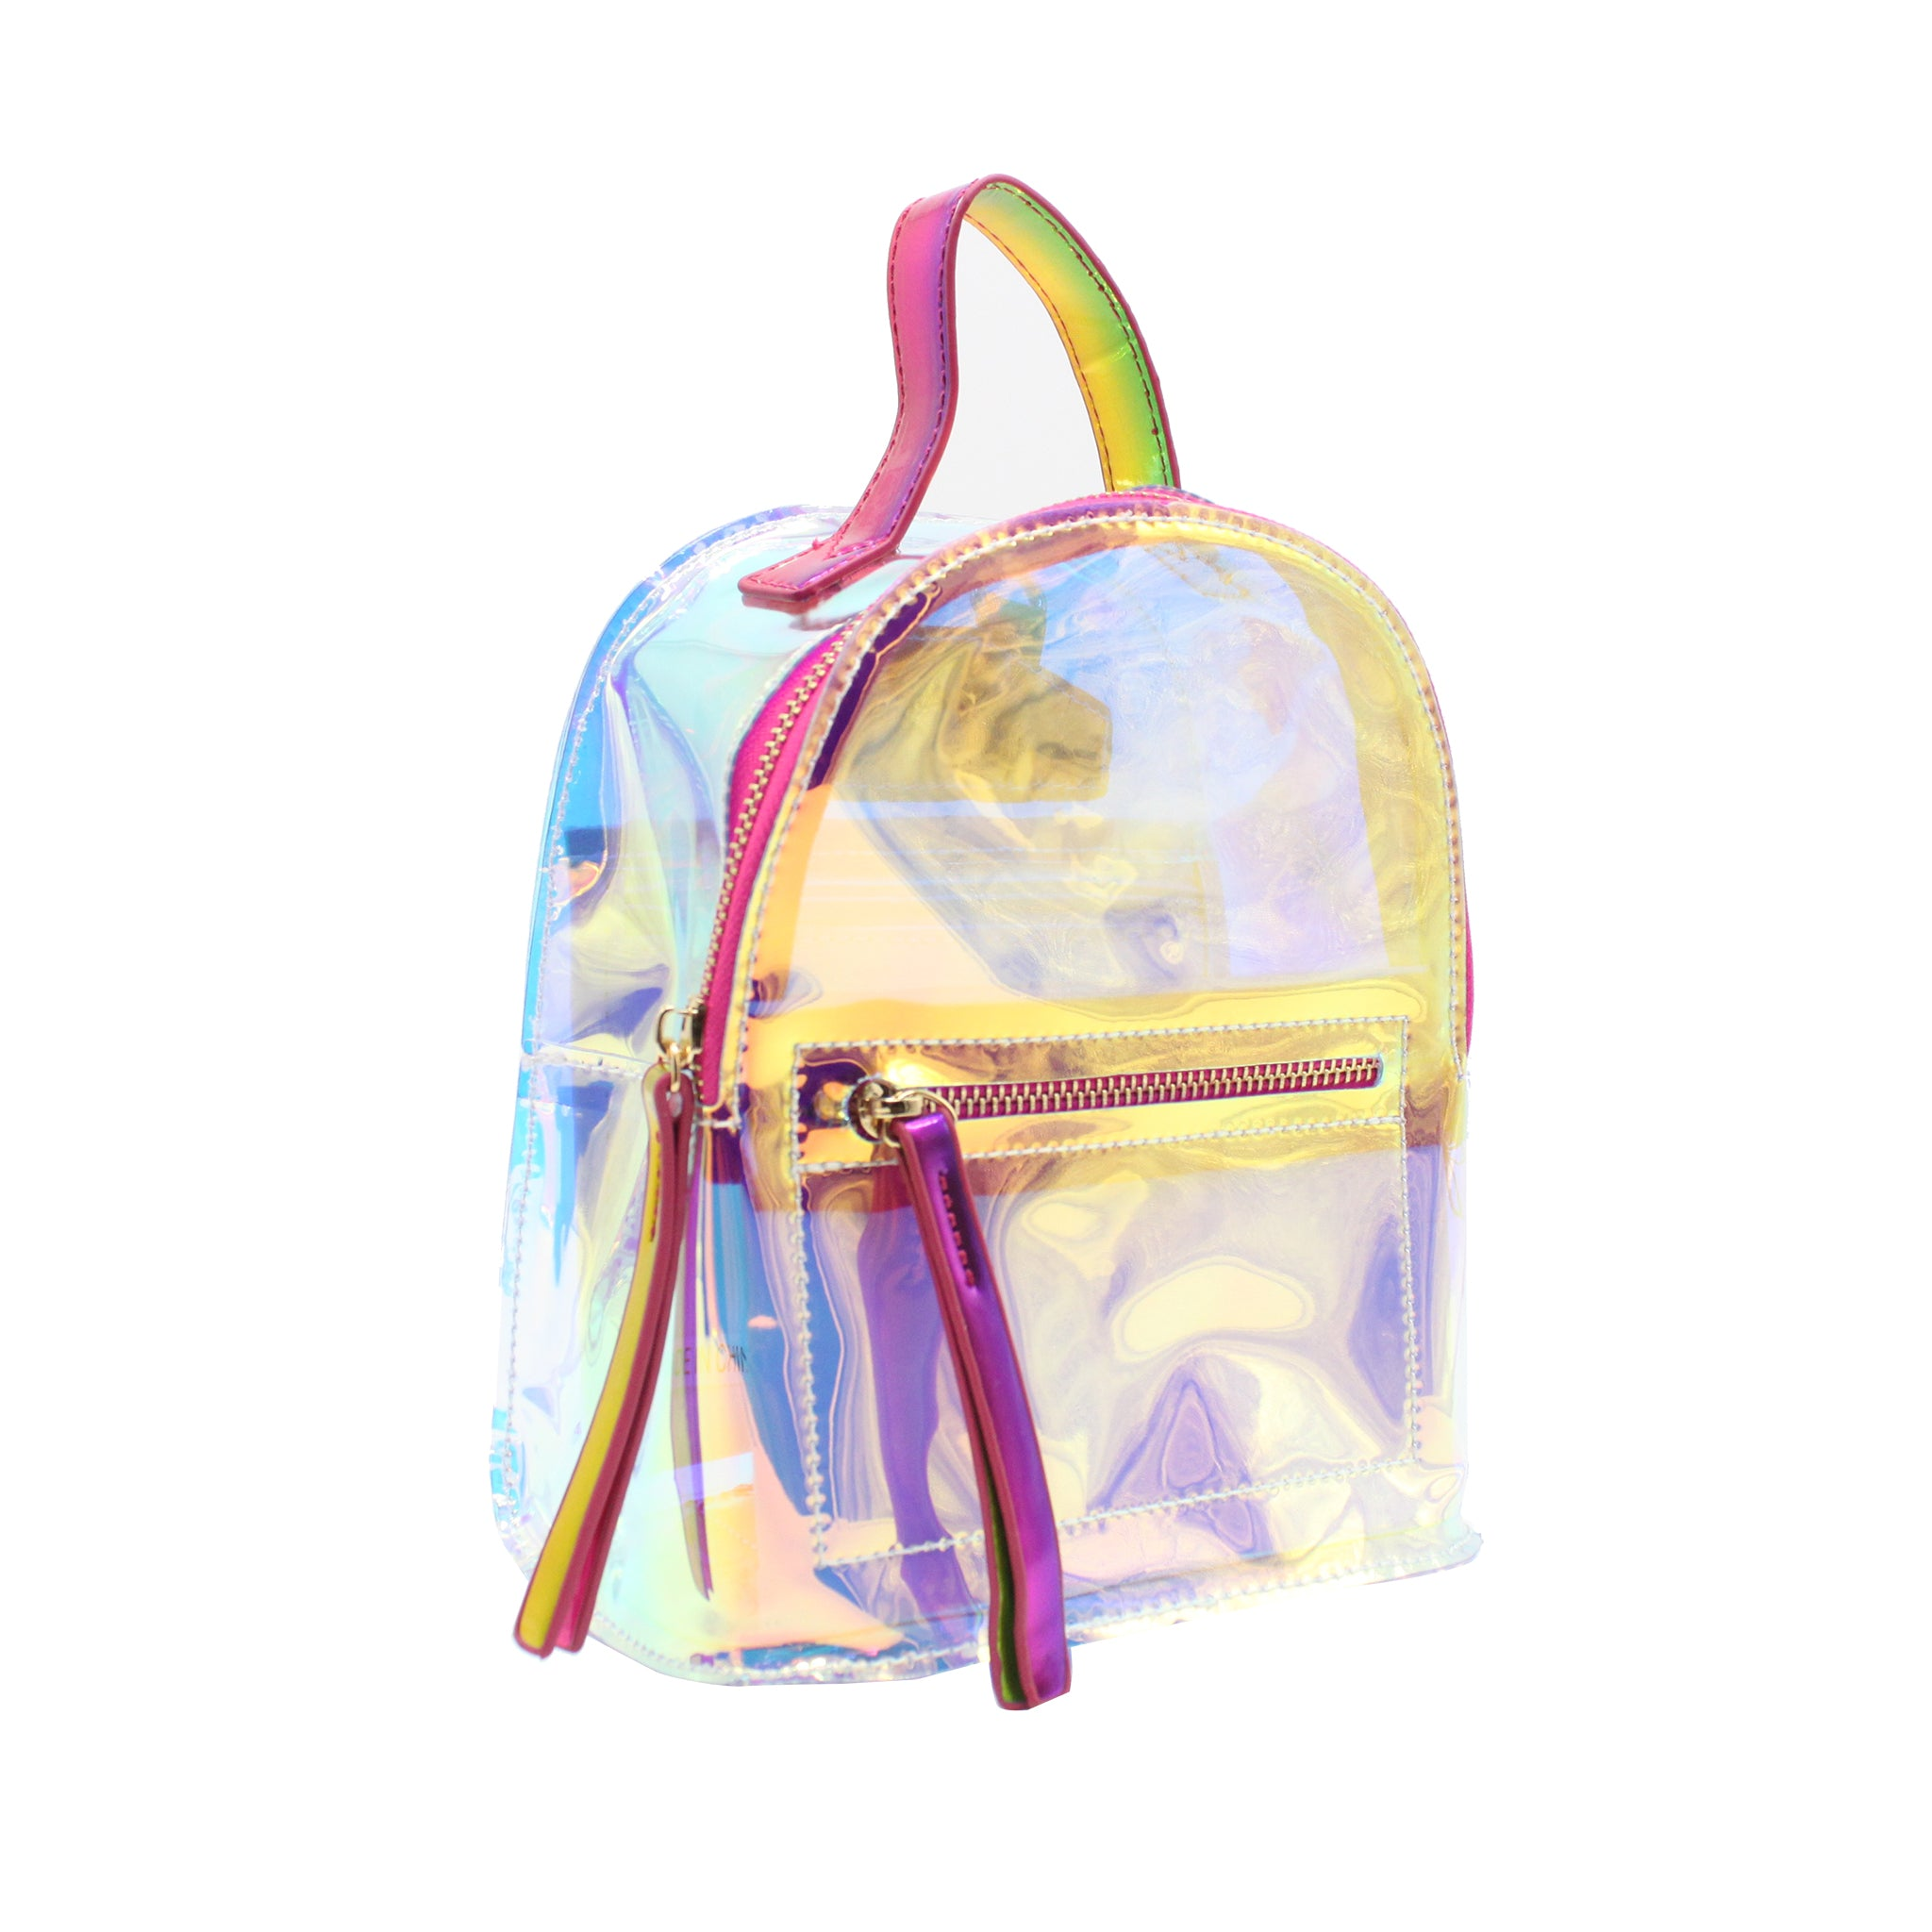 Holographic Mini Backpack/Shoulder Bag - Multicolour